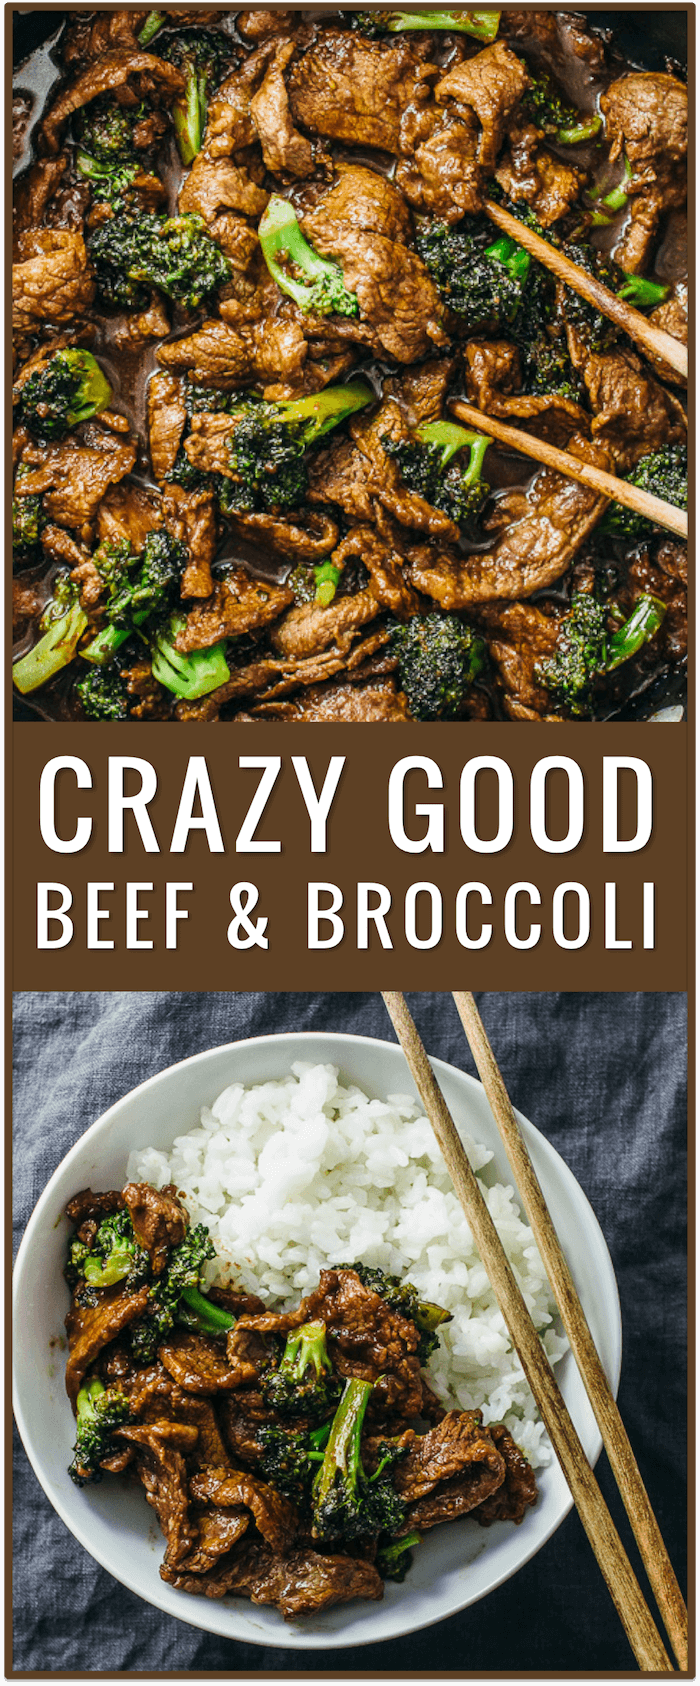 Crazy Good Beef And Broccoli - Savory Tooth